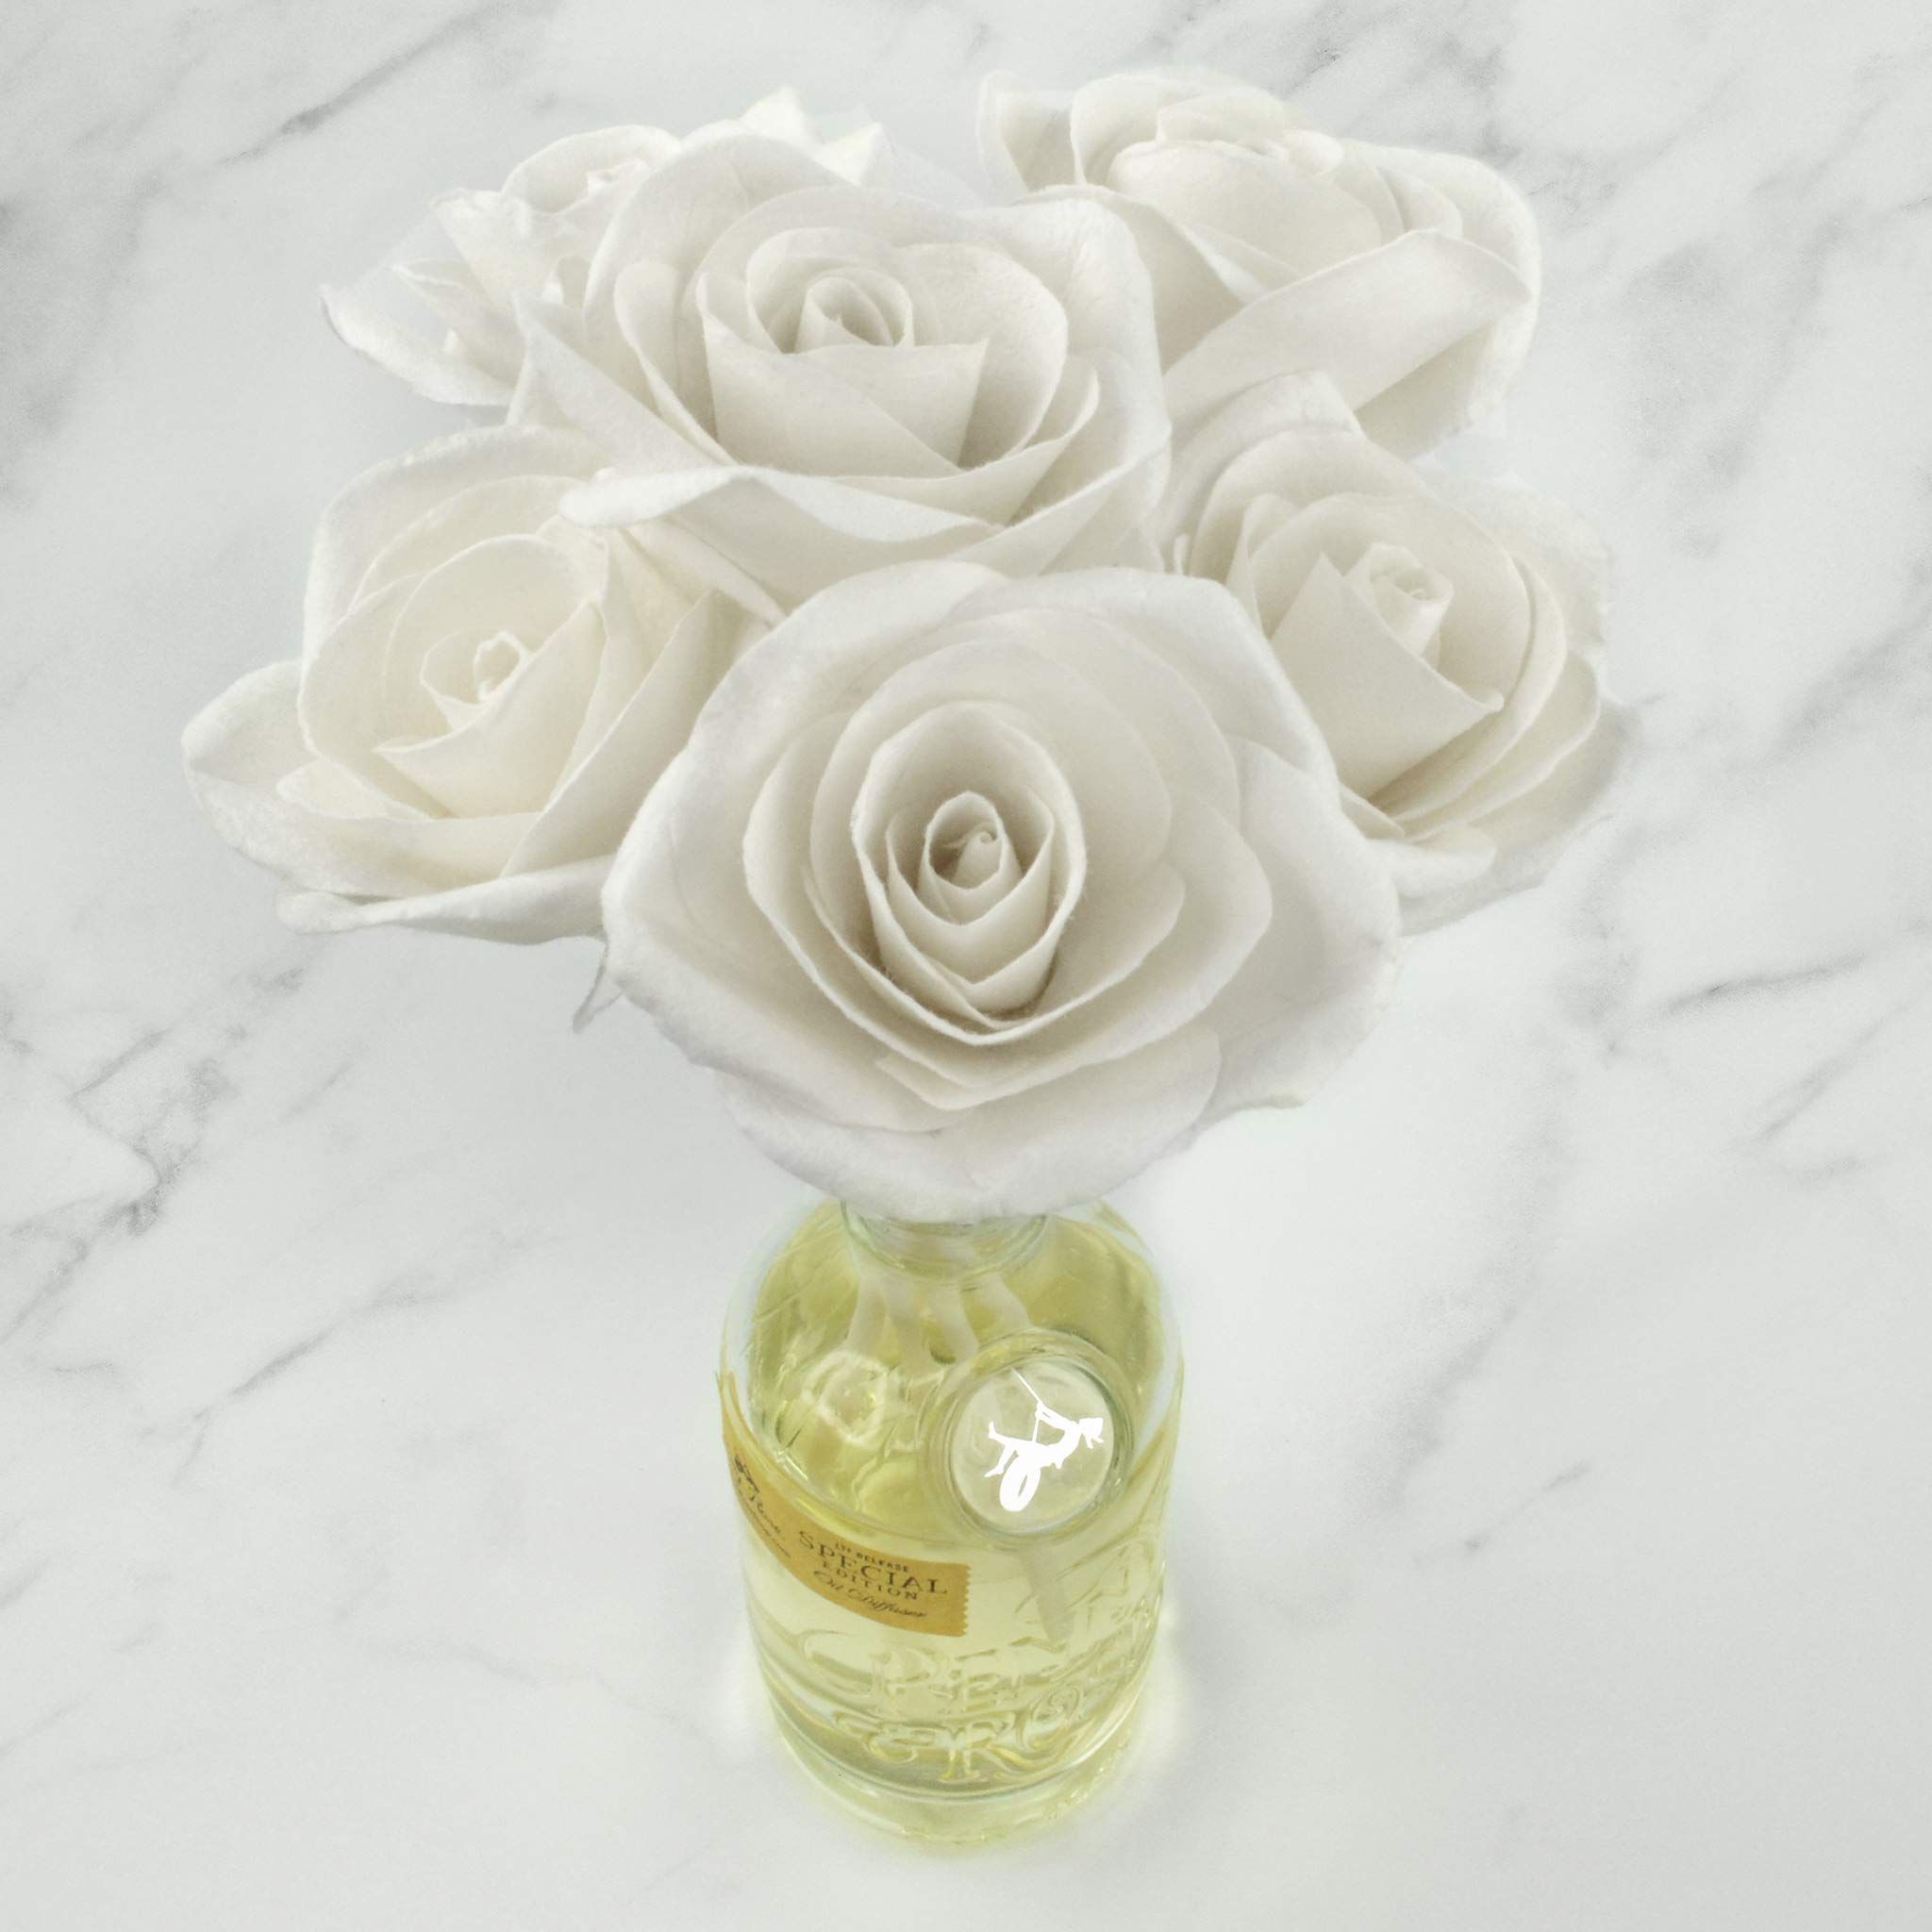 Penny & Rose White Rose Floral Diffuser | Summertime Spirits Oil Scent by PENNY AND ROSE (Image #5)